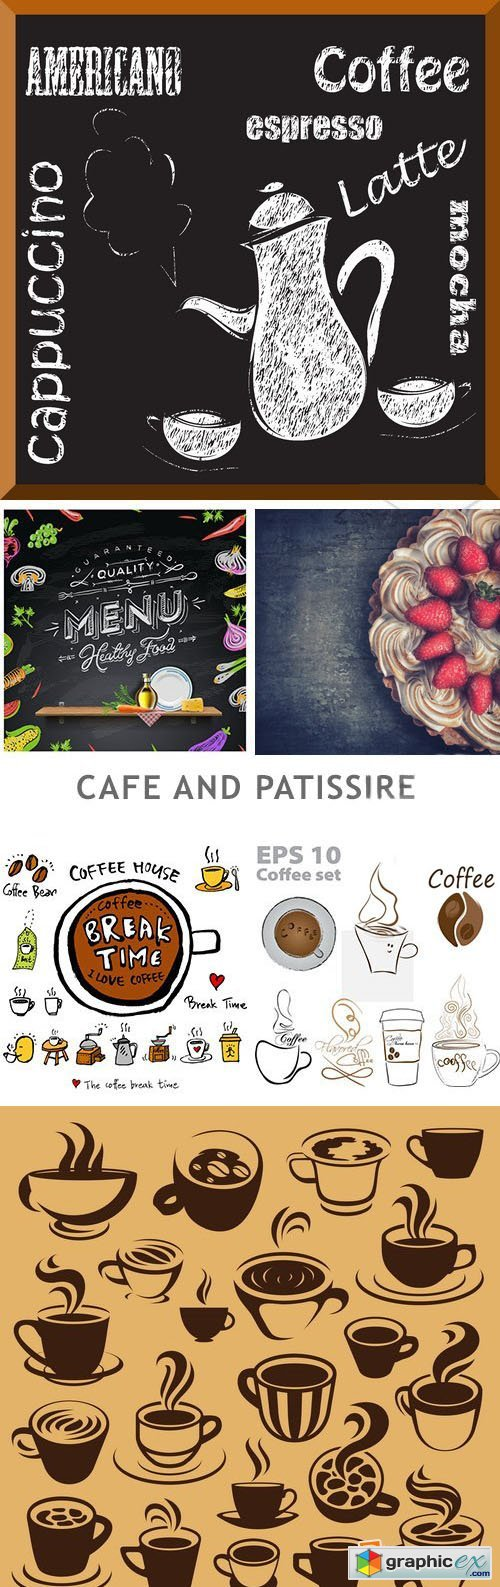 Cafe And Patissire - 22xEPS+3xJPG